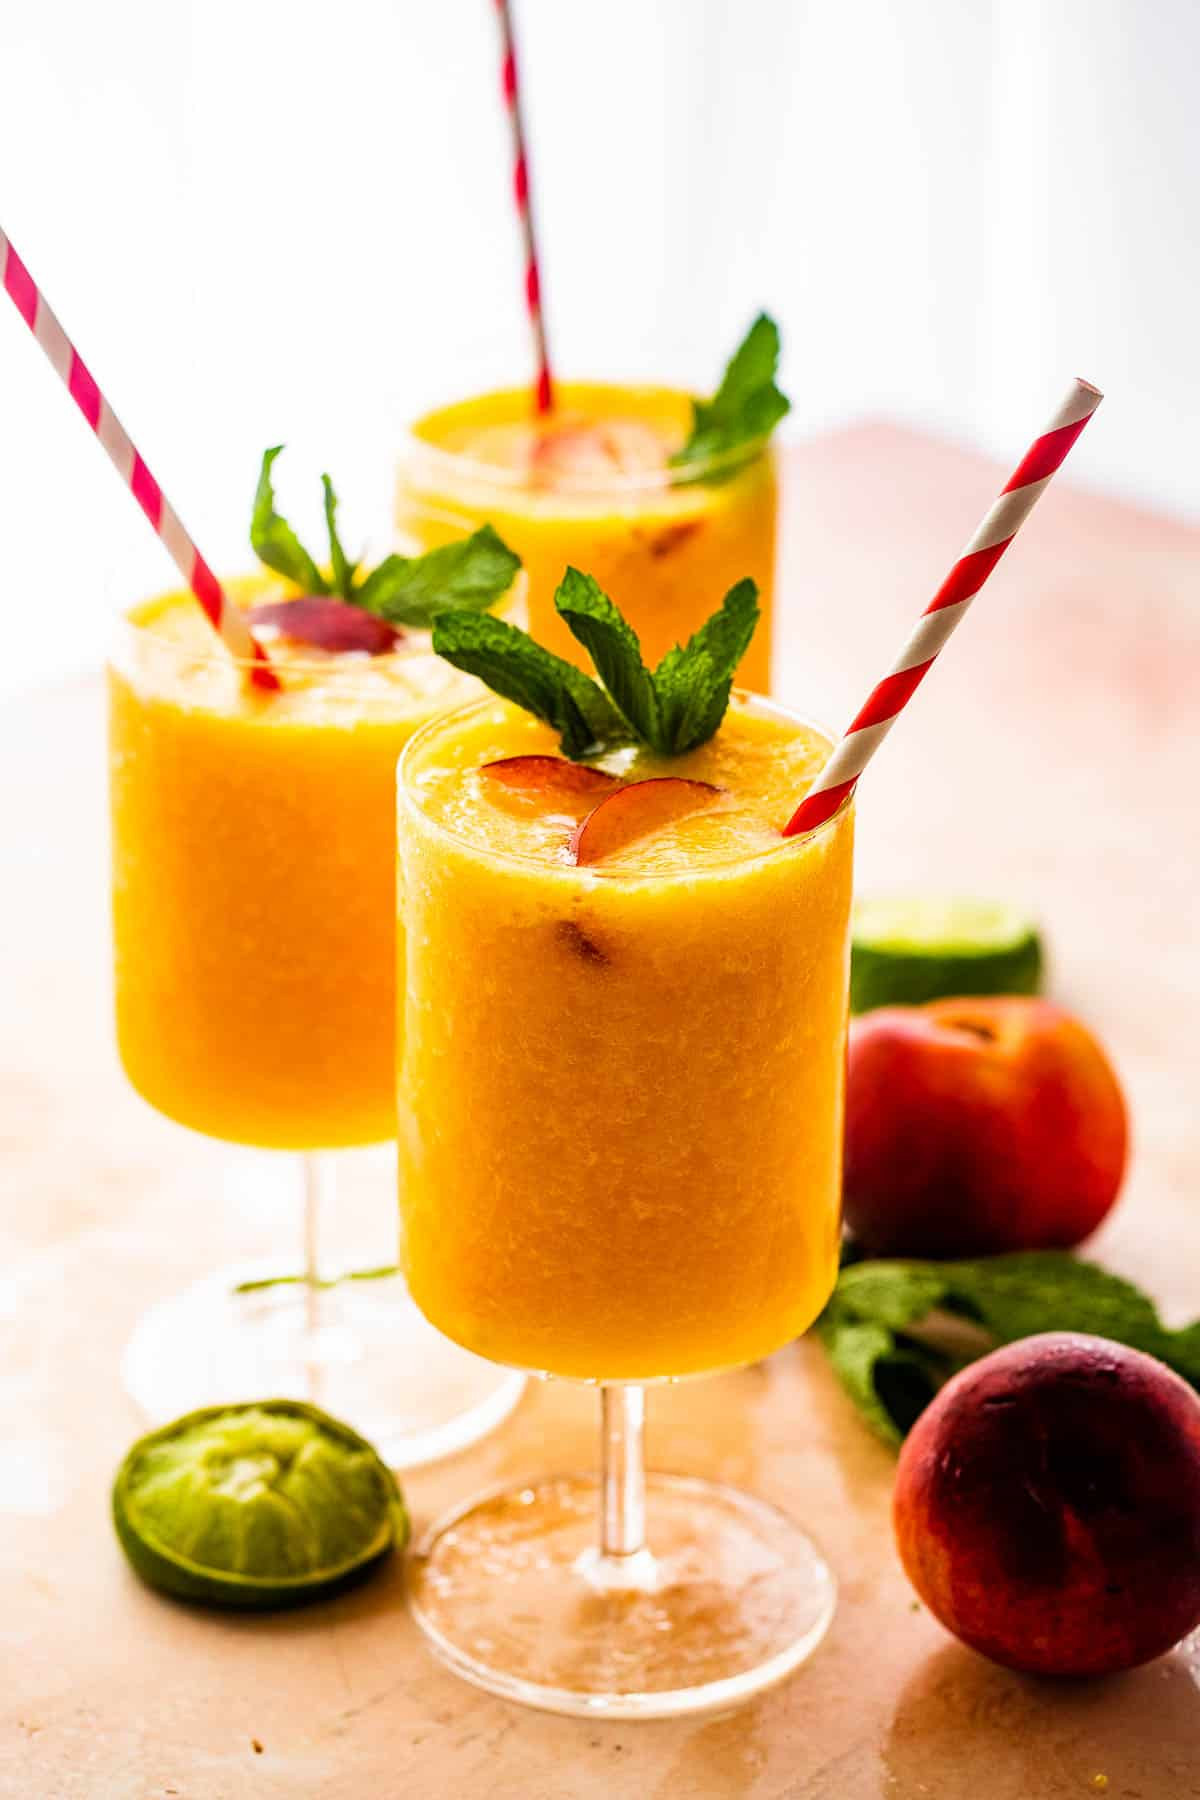 three glasses filled with peach daiquiris and garnished with mint, peach slices, and straws